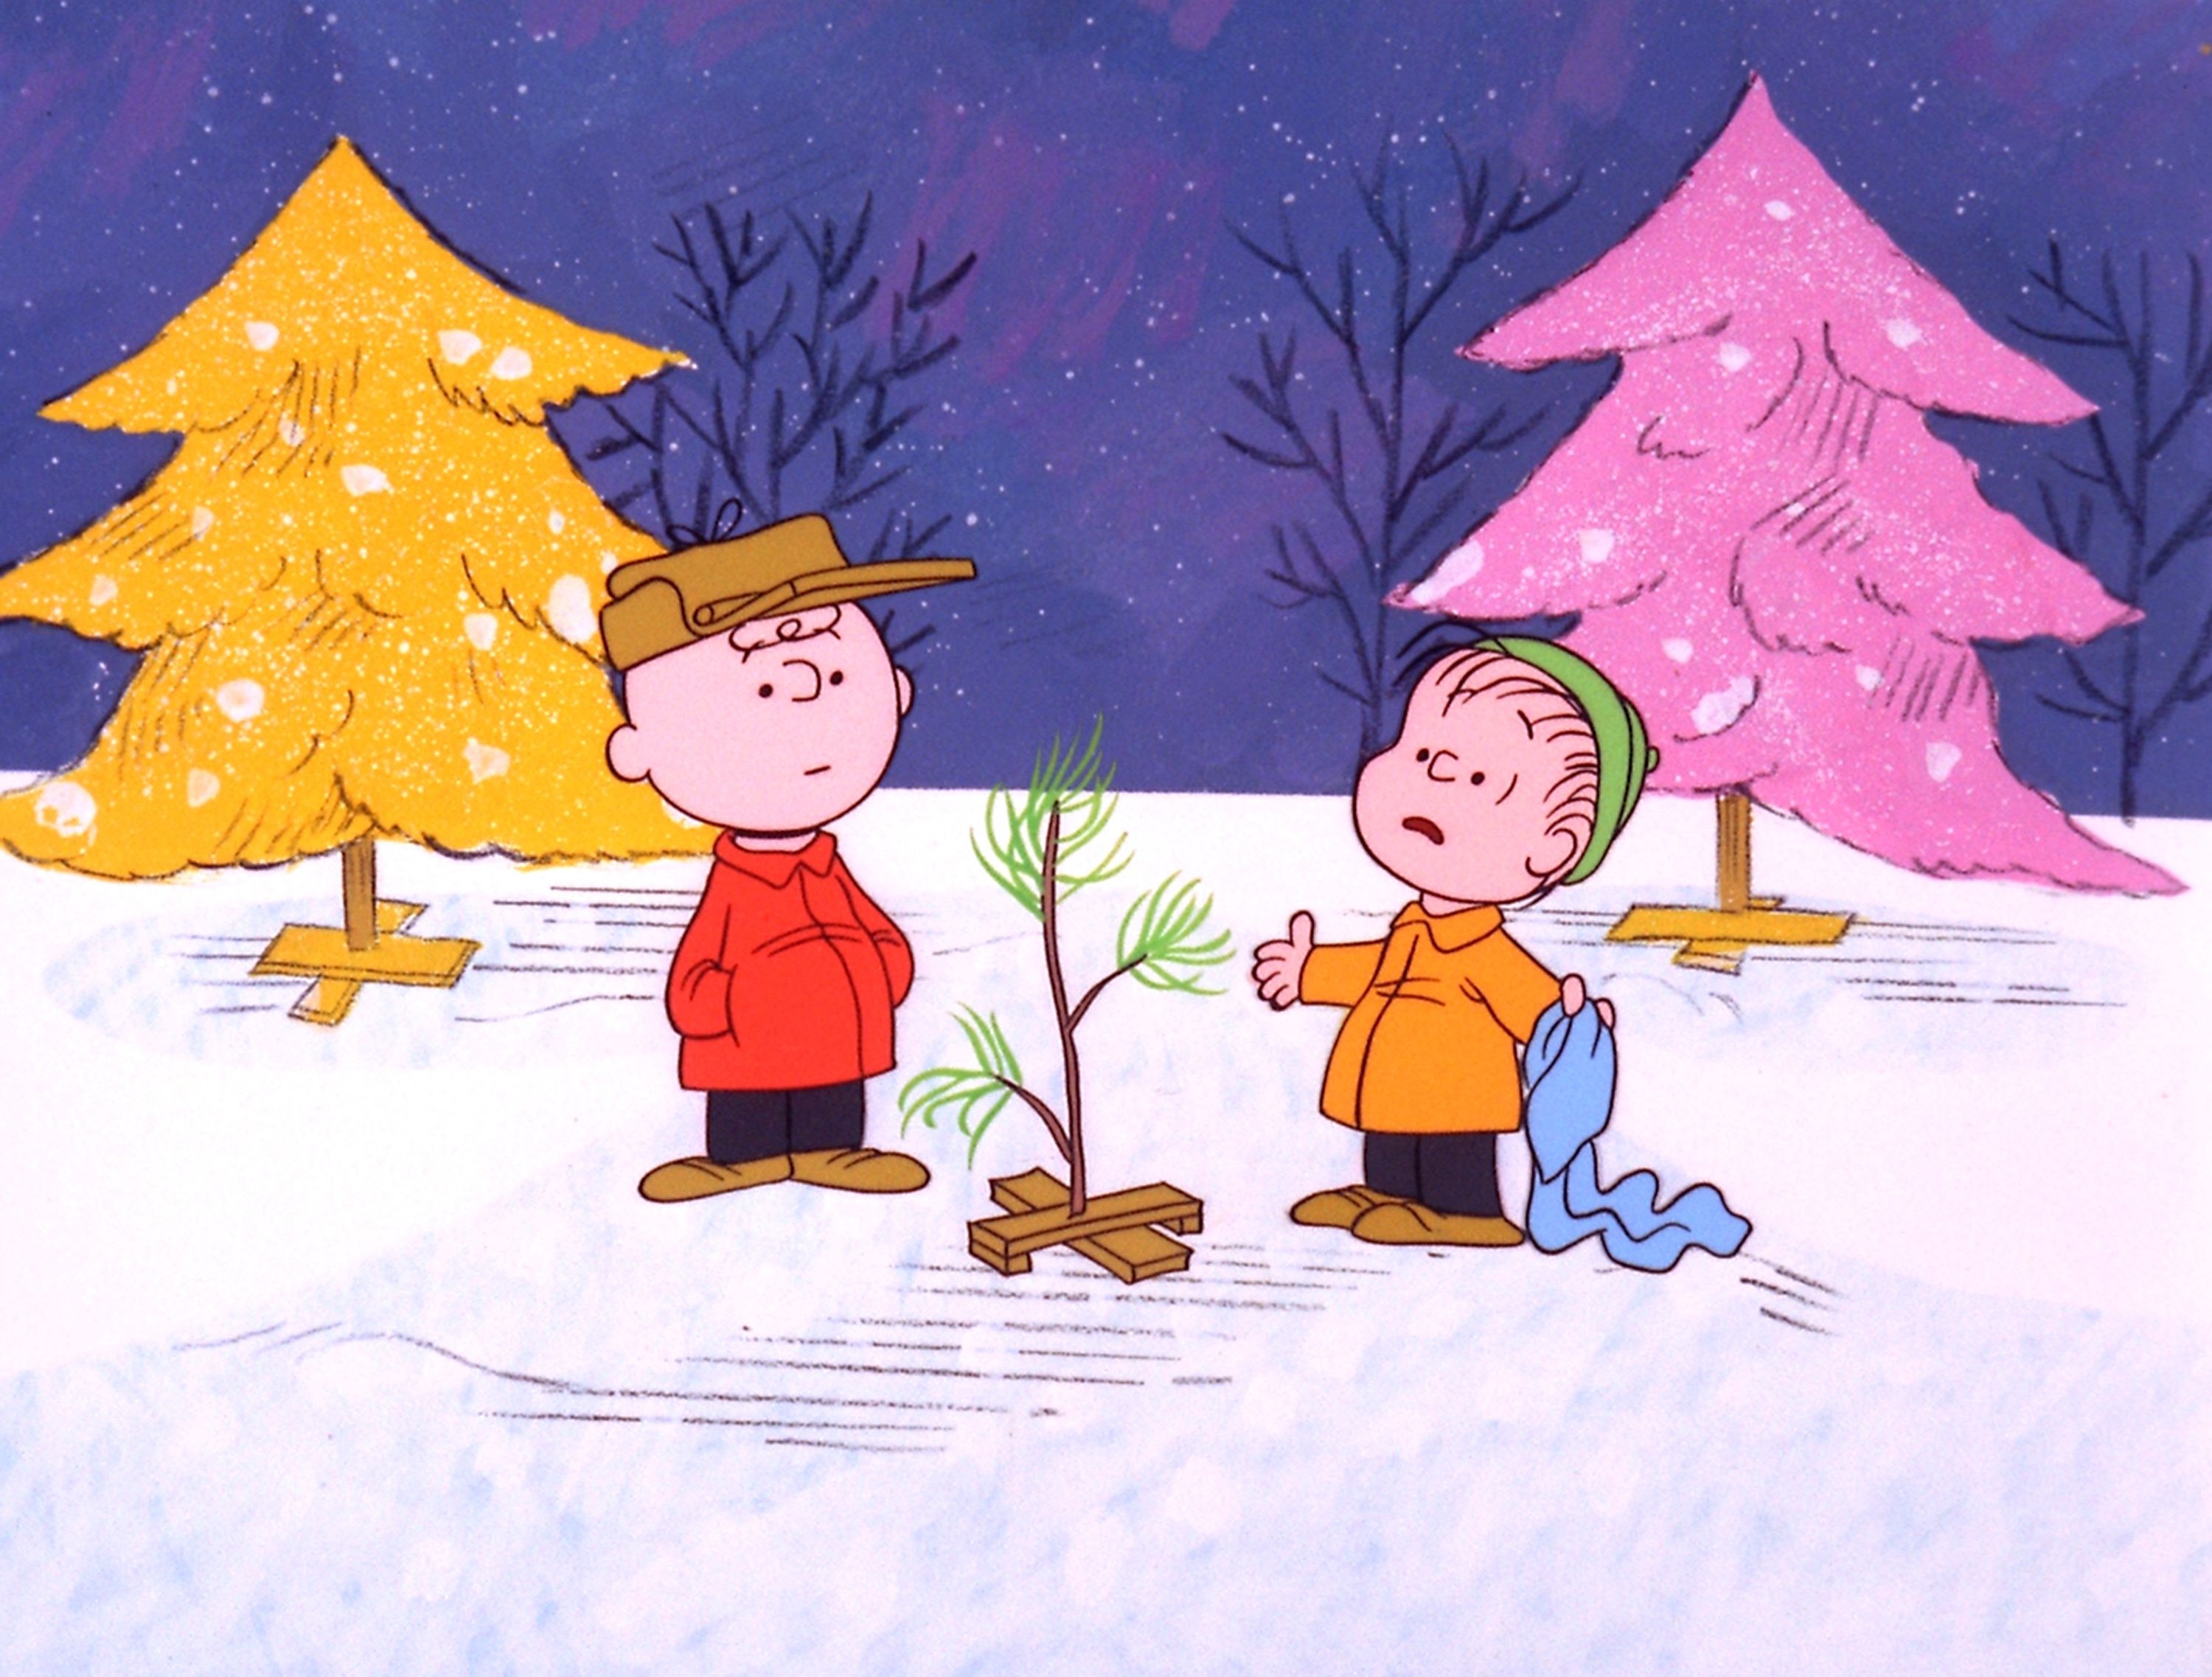 15 Best Quotes From A Charlie Brown Christmas Movie For The Holidays